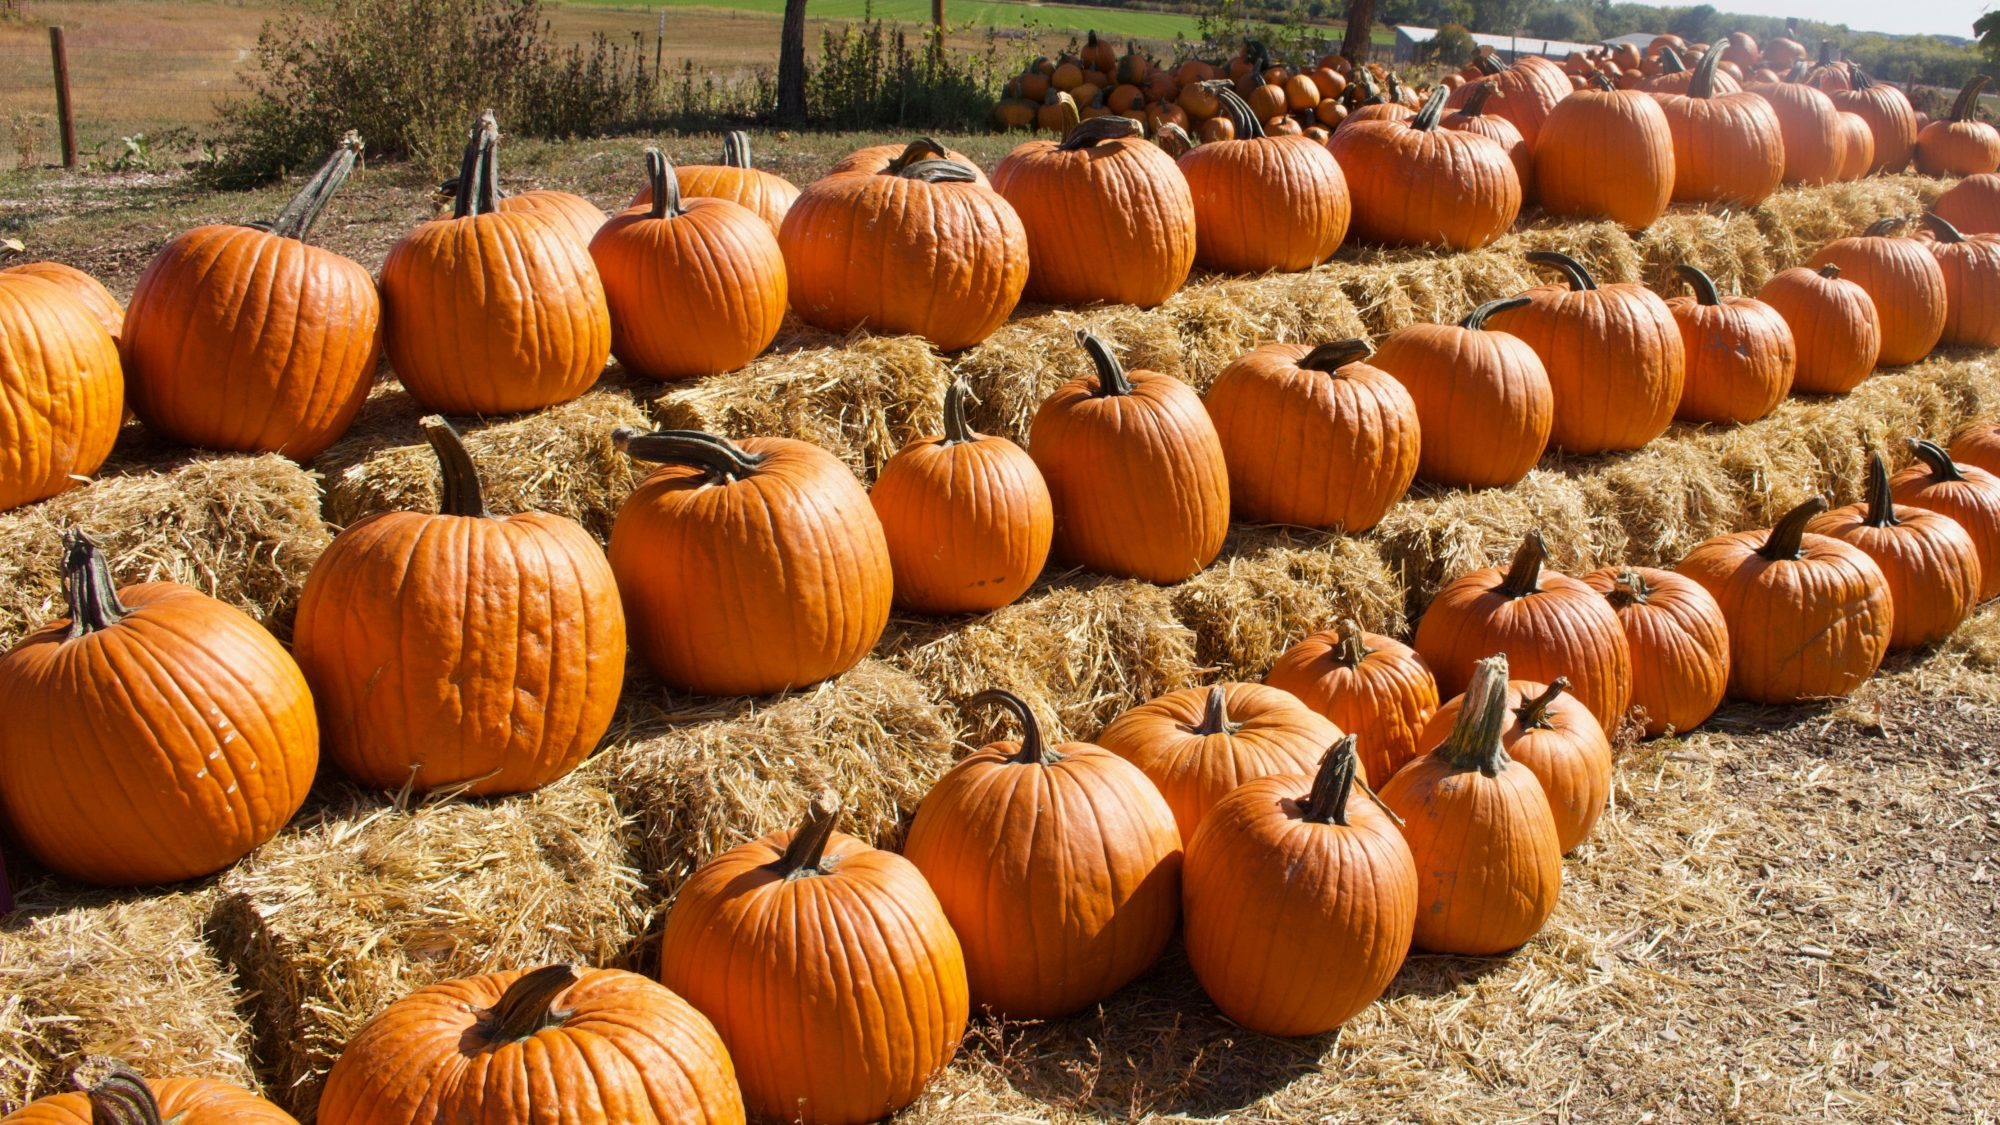 The Best Pumpkin Patch in Every State, According to Yelp: picture of line of pumpkins on hay bales